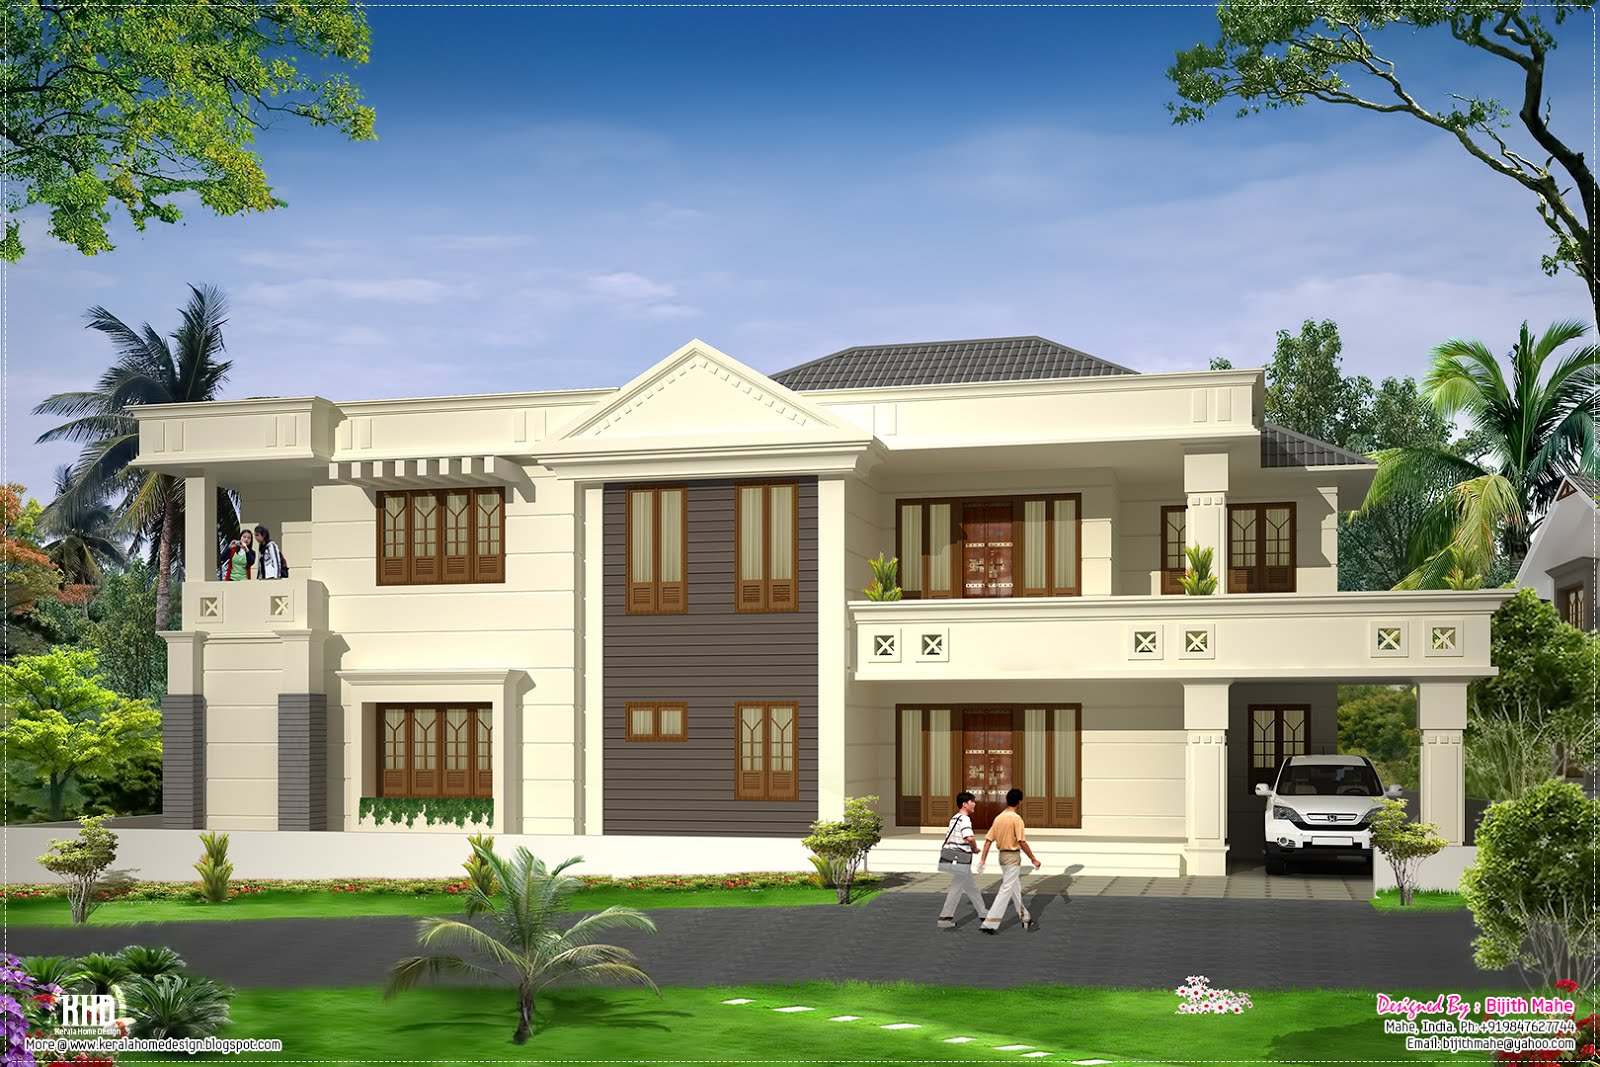 Modern luxury home design kerala home design and floor plans for Modern house plans